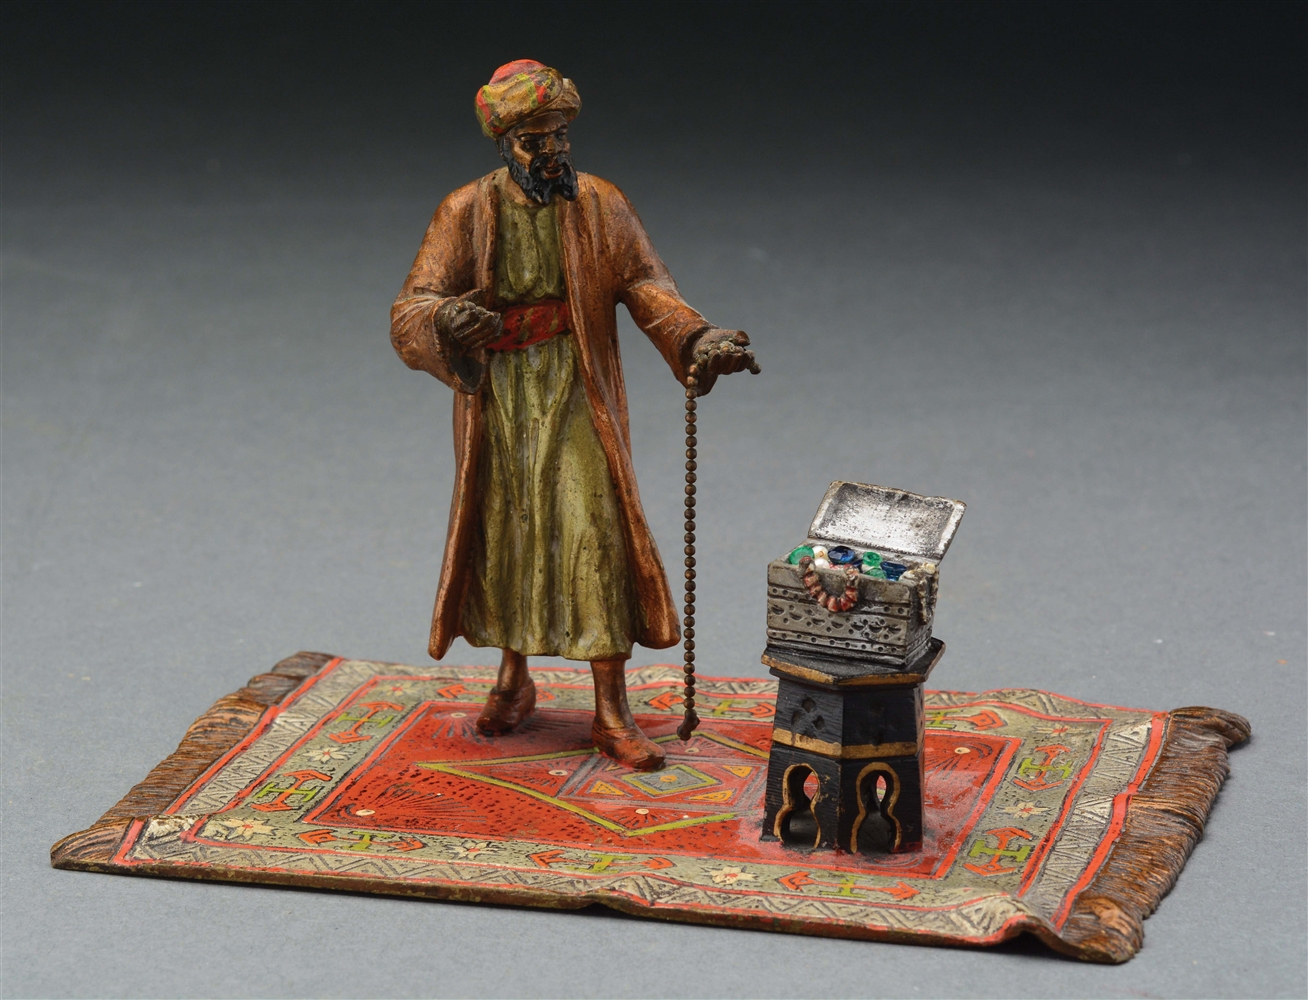 Austrian Bronze Figure of Man on Carpet with Box and Jewels.